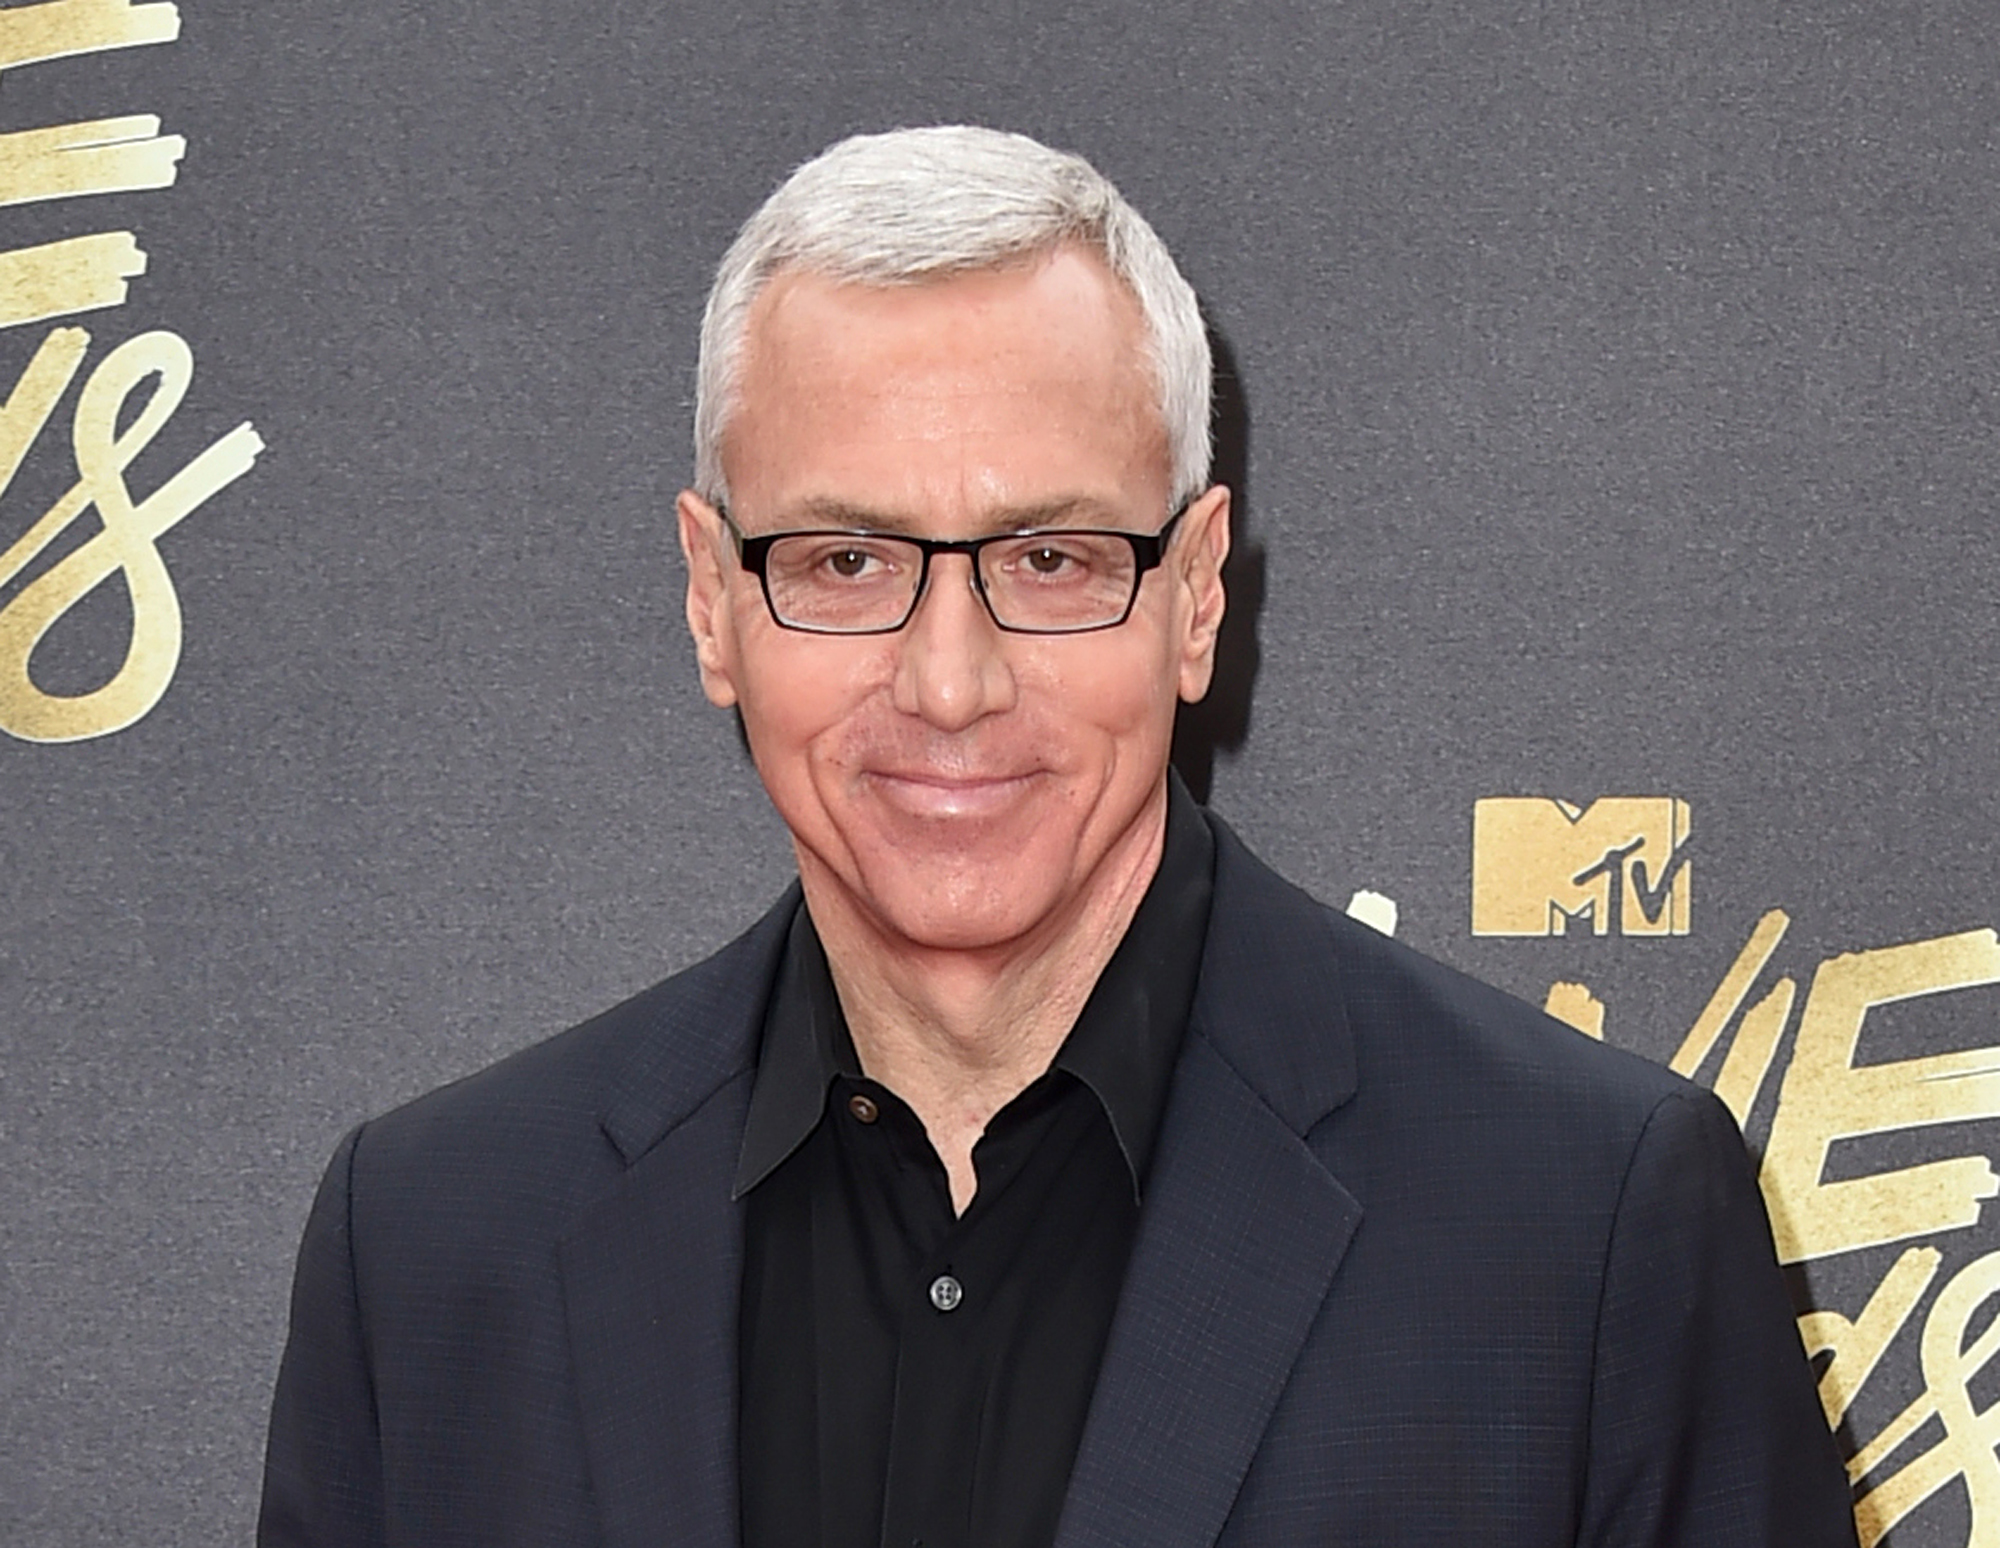 Q Amp A Dr Drew On Adhd And A Modern Way To See A Doctor